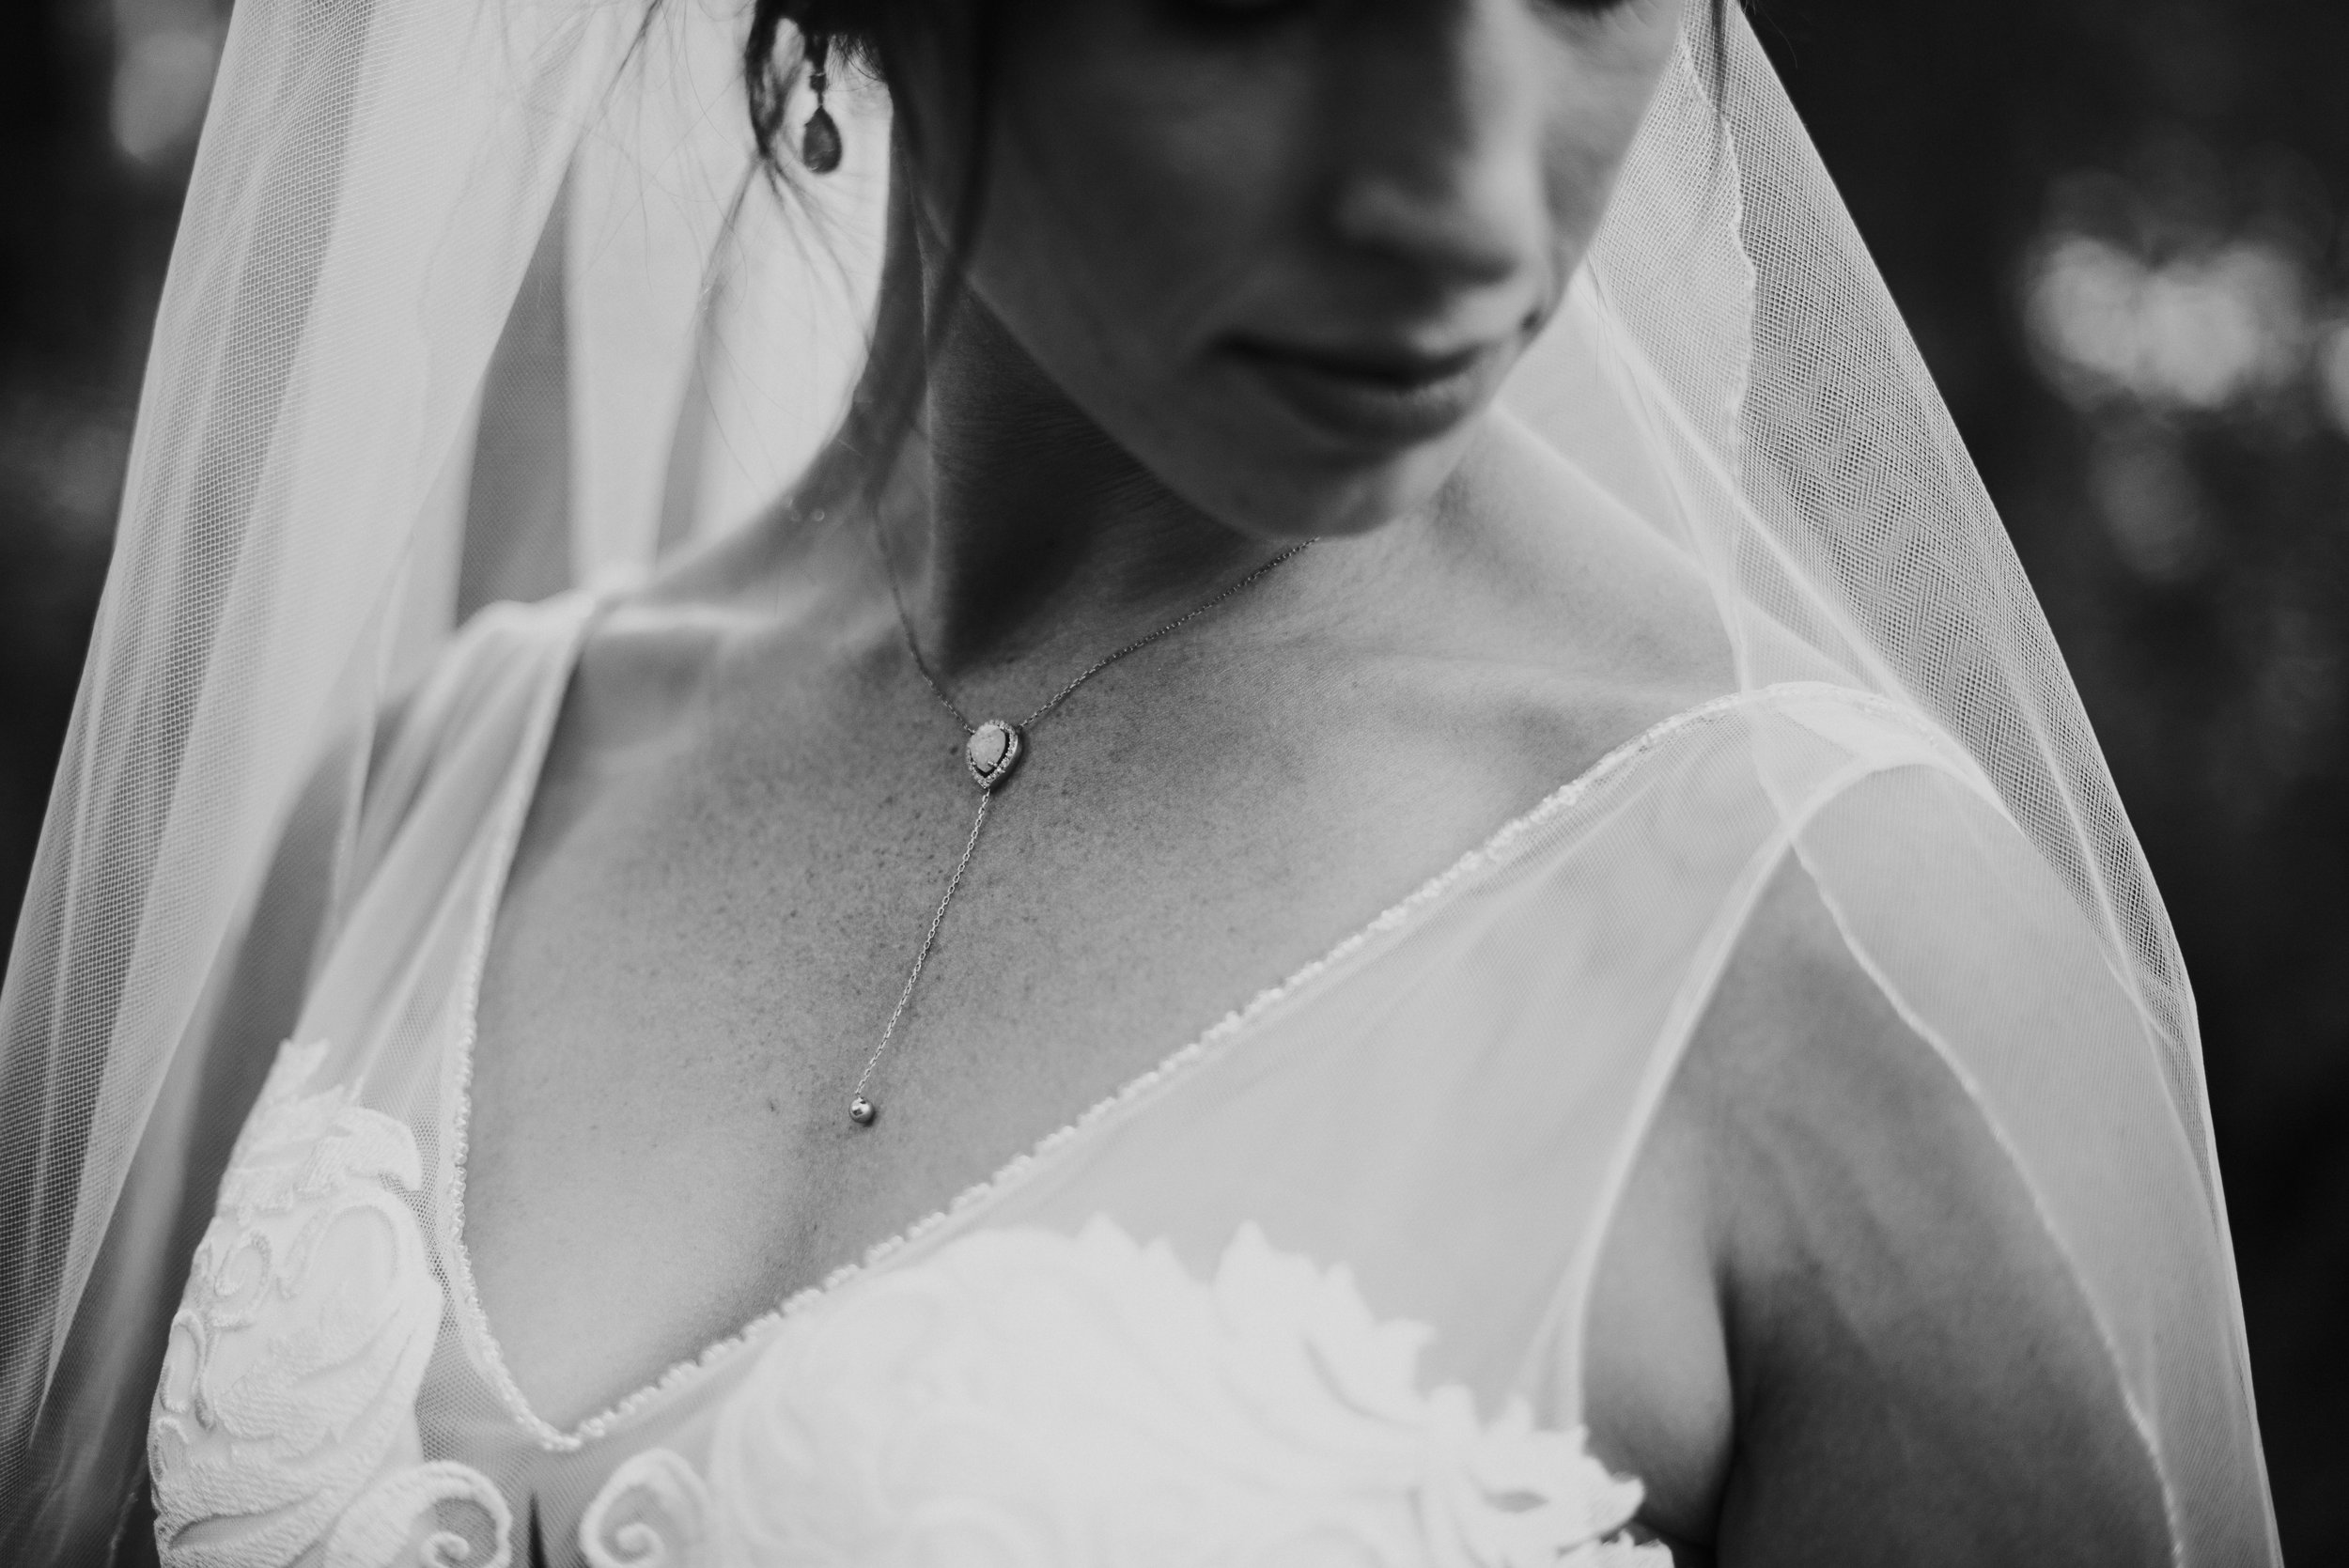 Intimate portrait of bride with veil